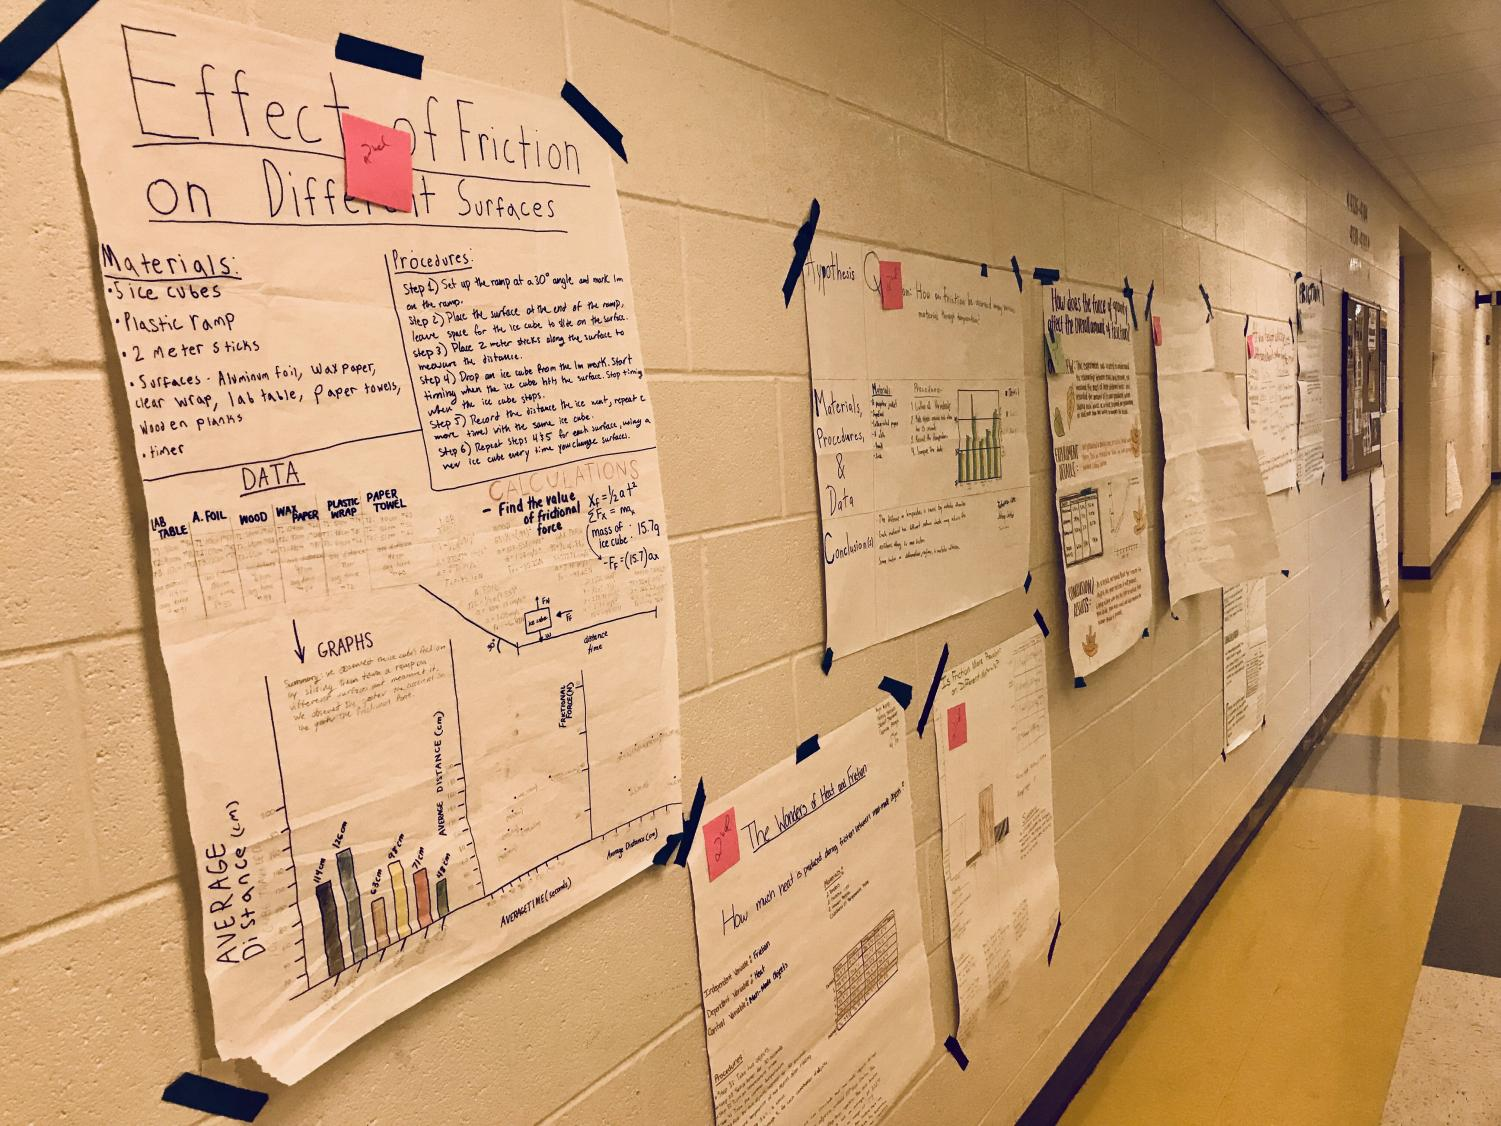 Posters completed by Peterson's students, showcasing their various scientific experiments.